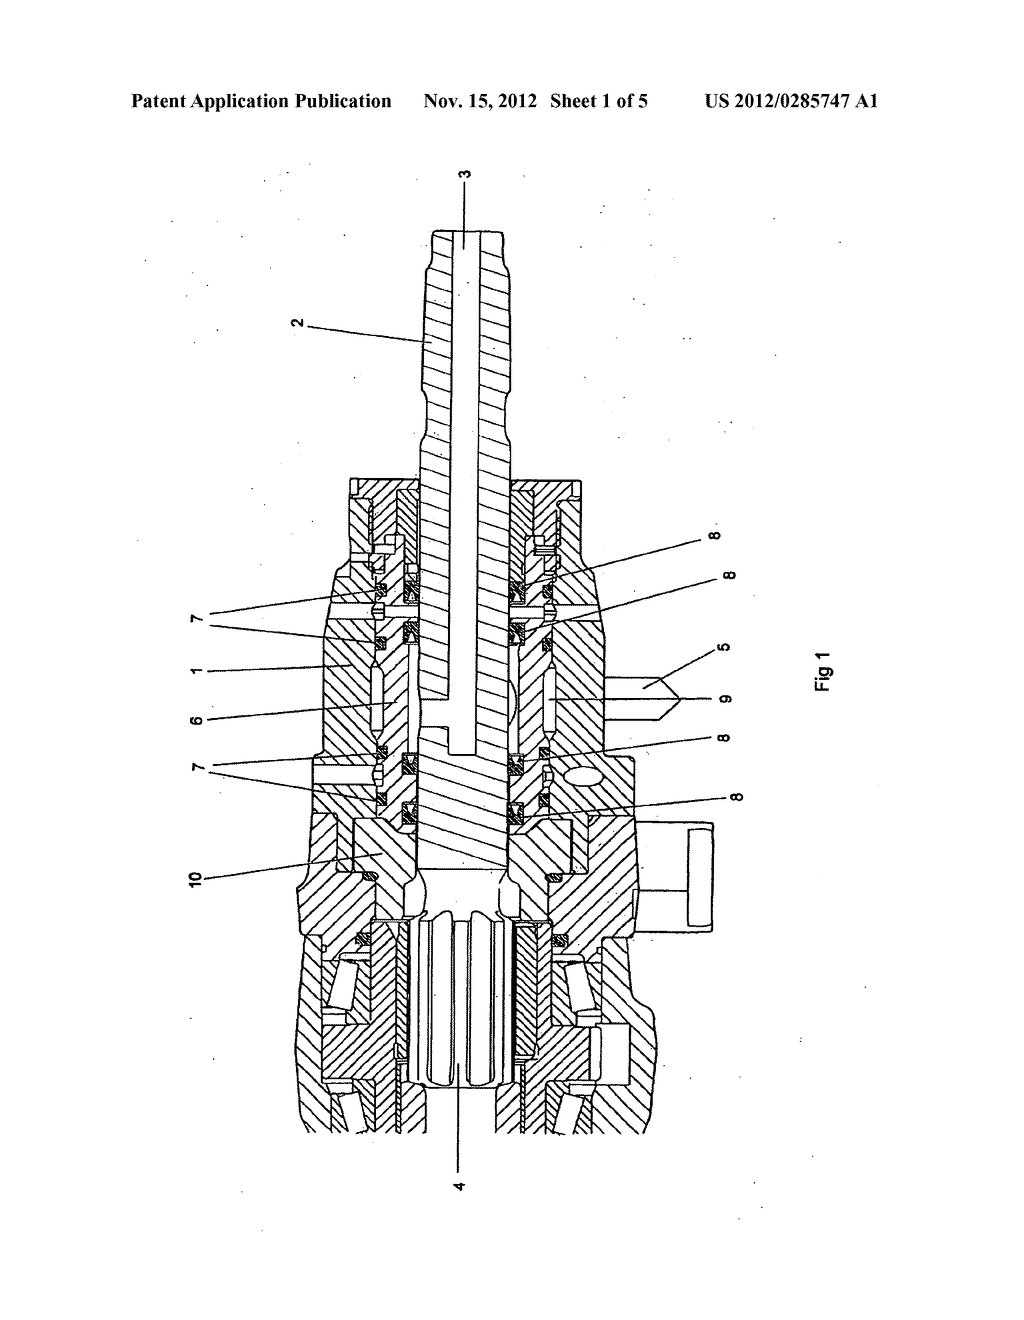 hight resolution of percussion rock drilling machine and drill rig diagram schematic and image 02